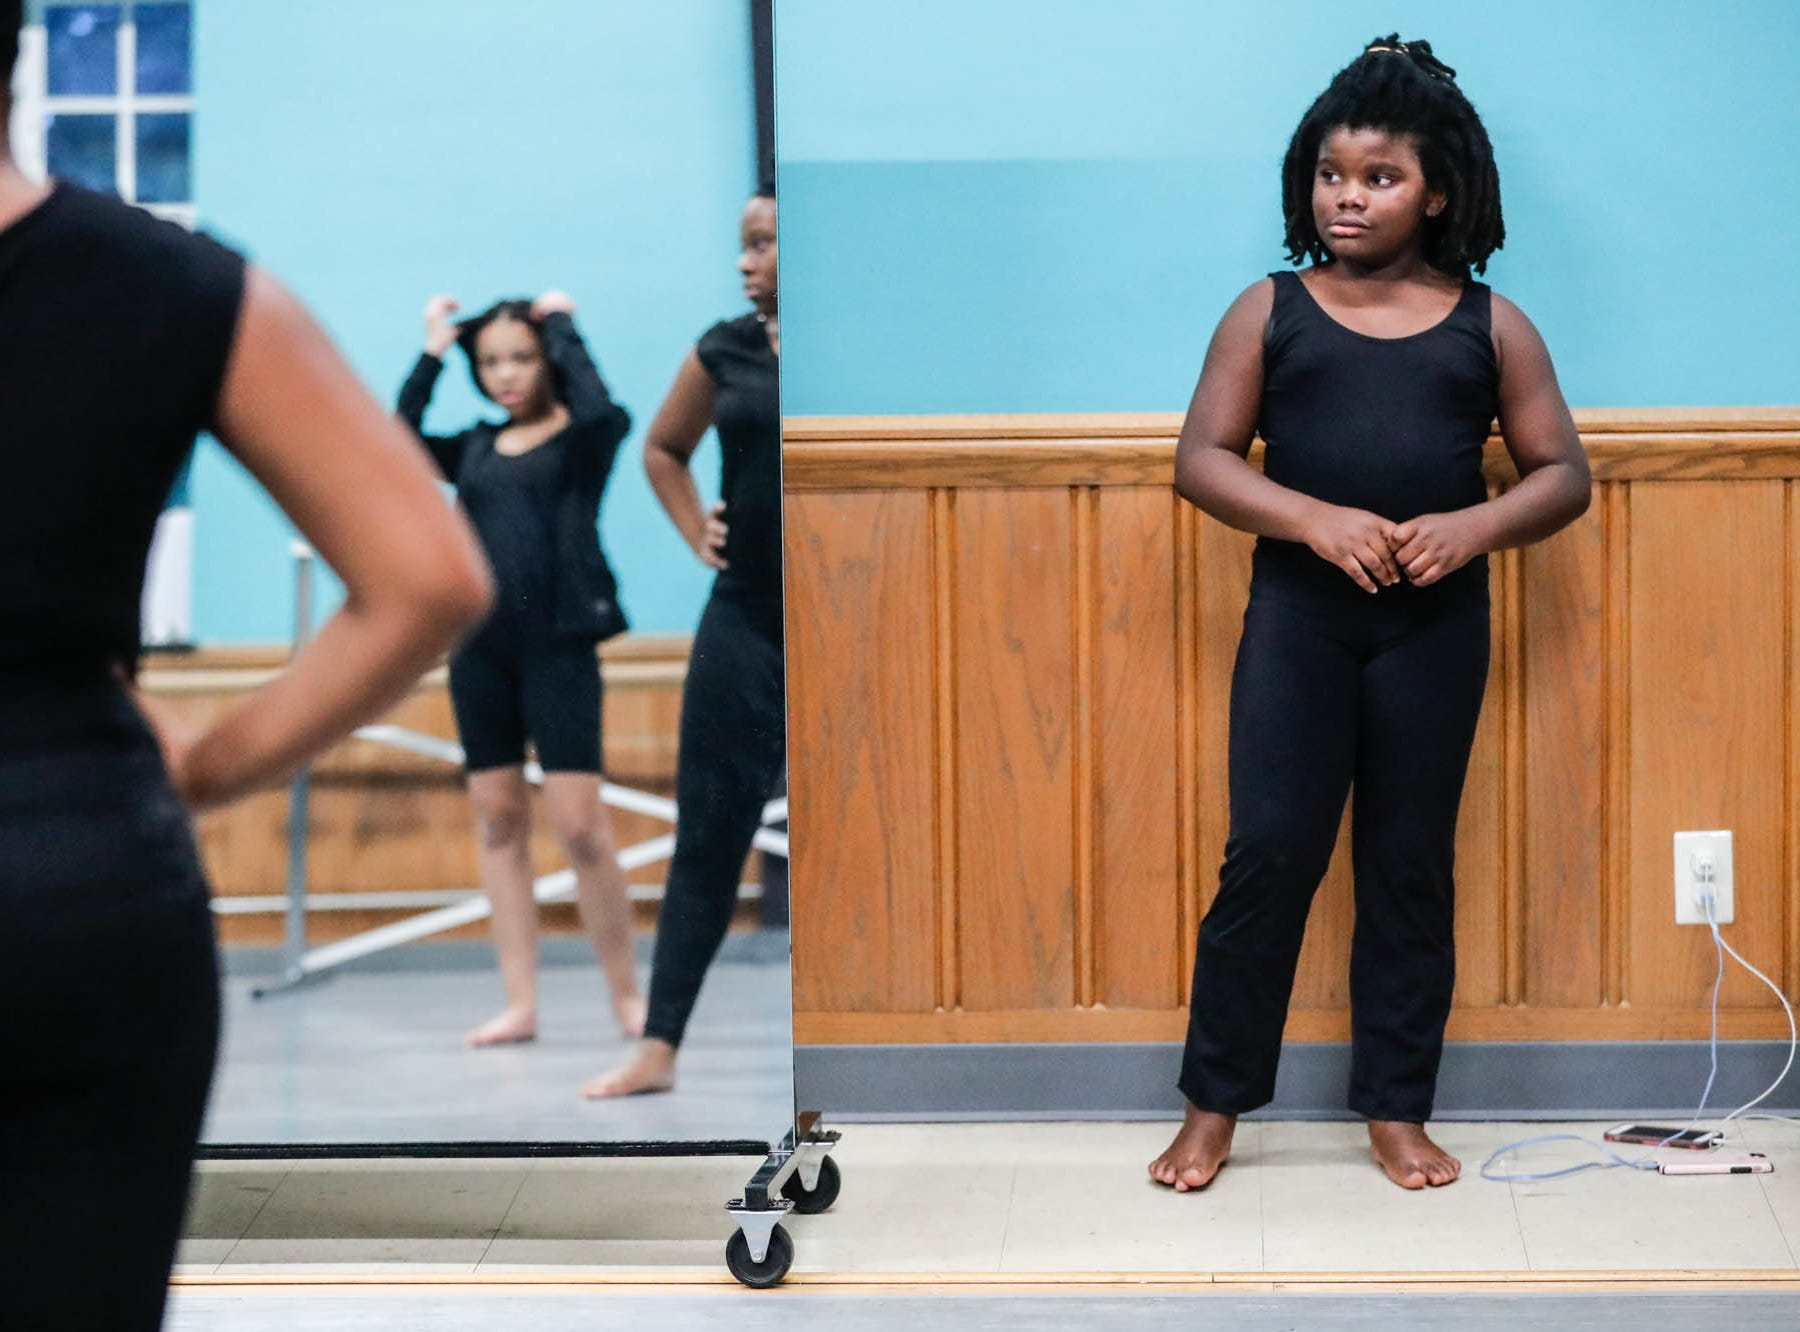 Leslie Raysor watches a routine during an Iibada Dance Company class at Broadway United Methodist Church in Indianapolis Ind. on Wednesday, Oct. 31, 2018. The children's nonprofit dance studio teaches cultural enrichment, discipline, and positive self-esteem through the art of dance.